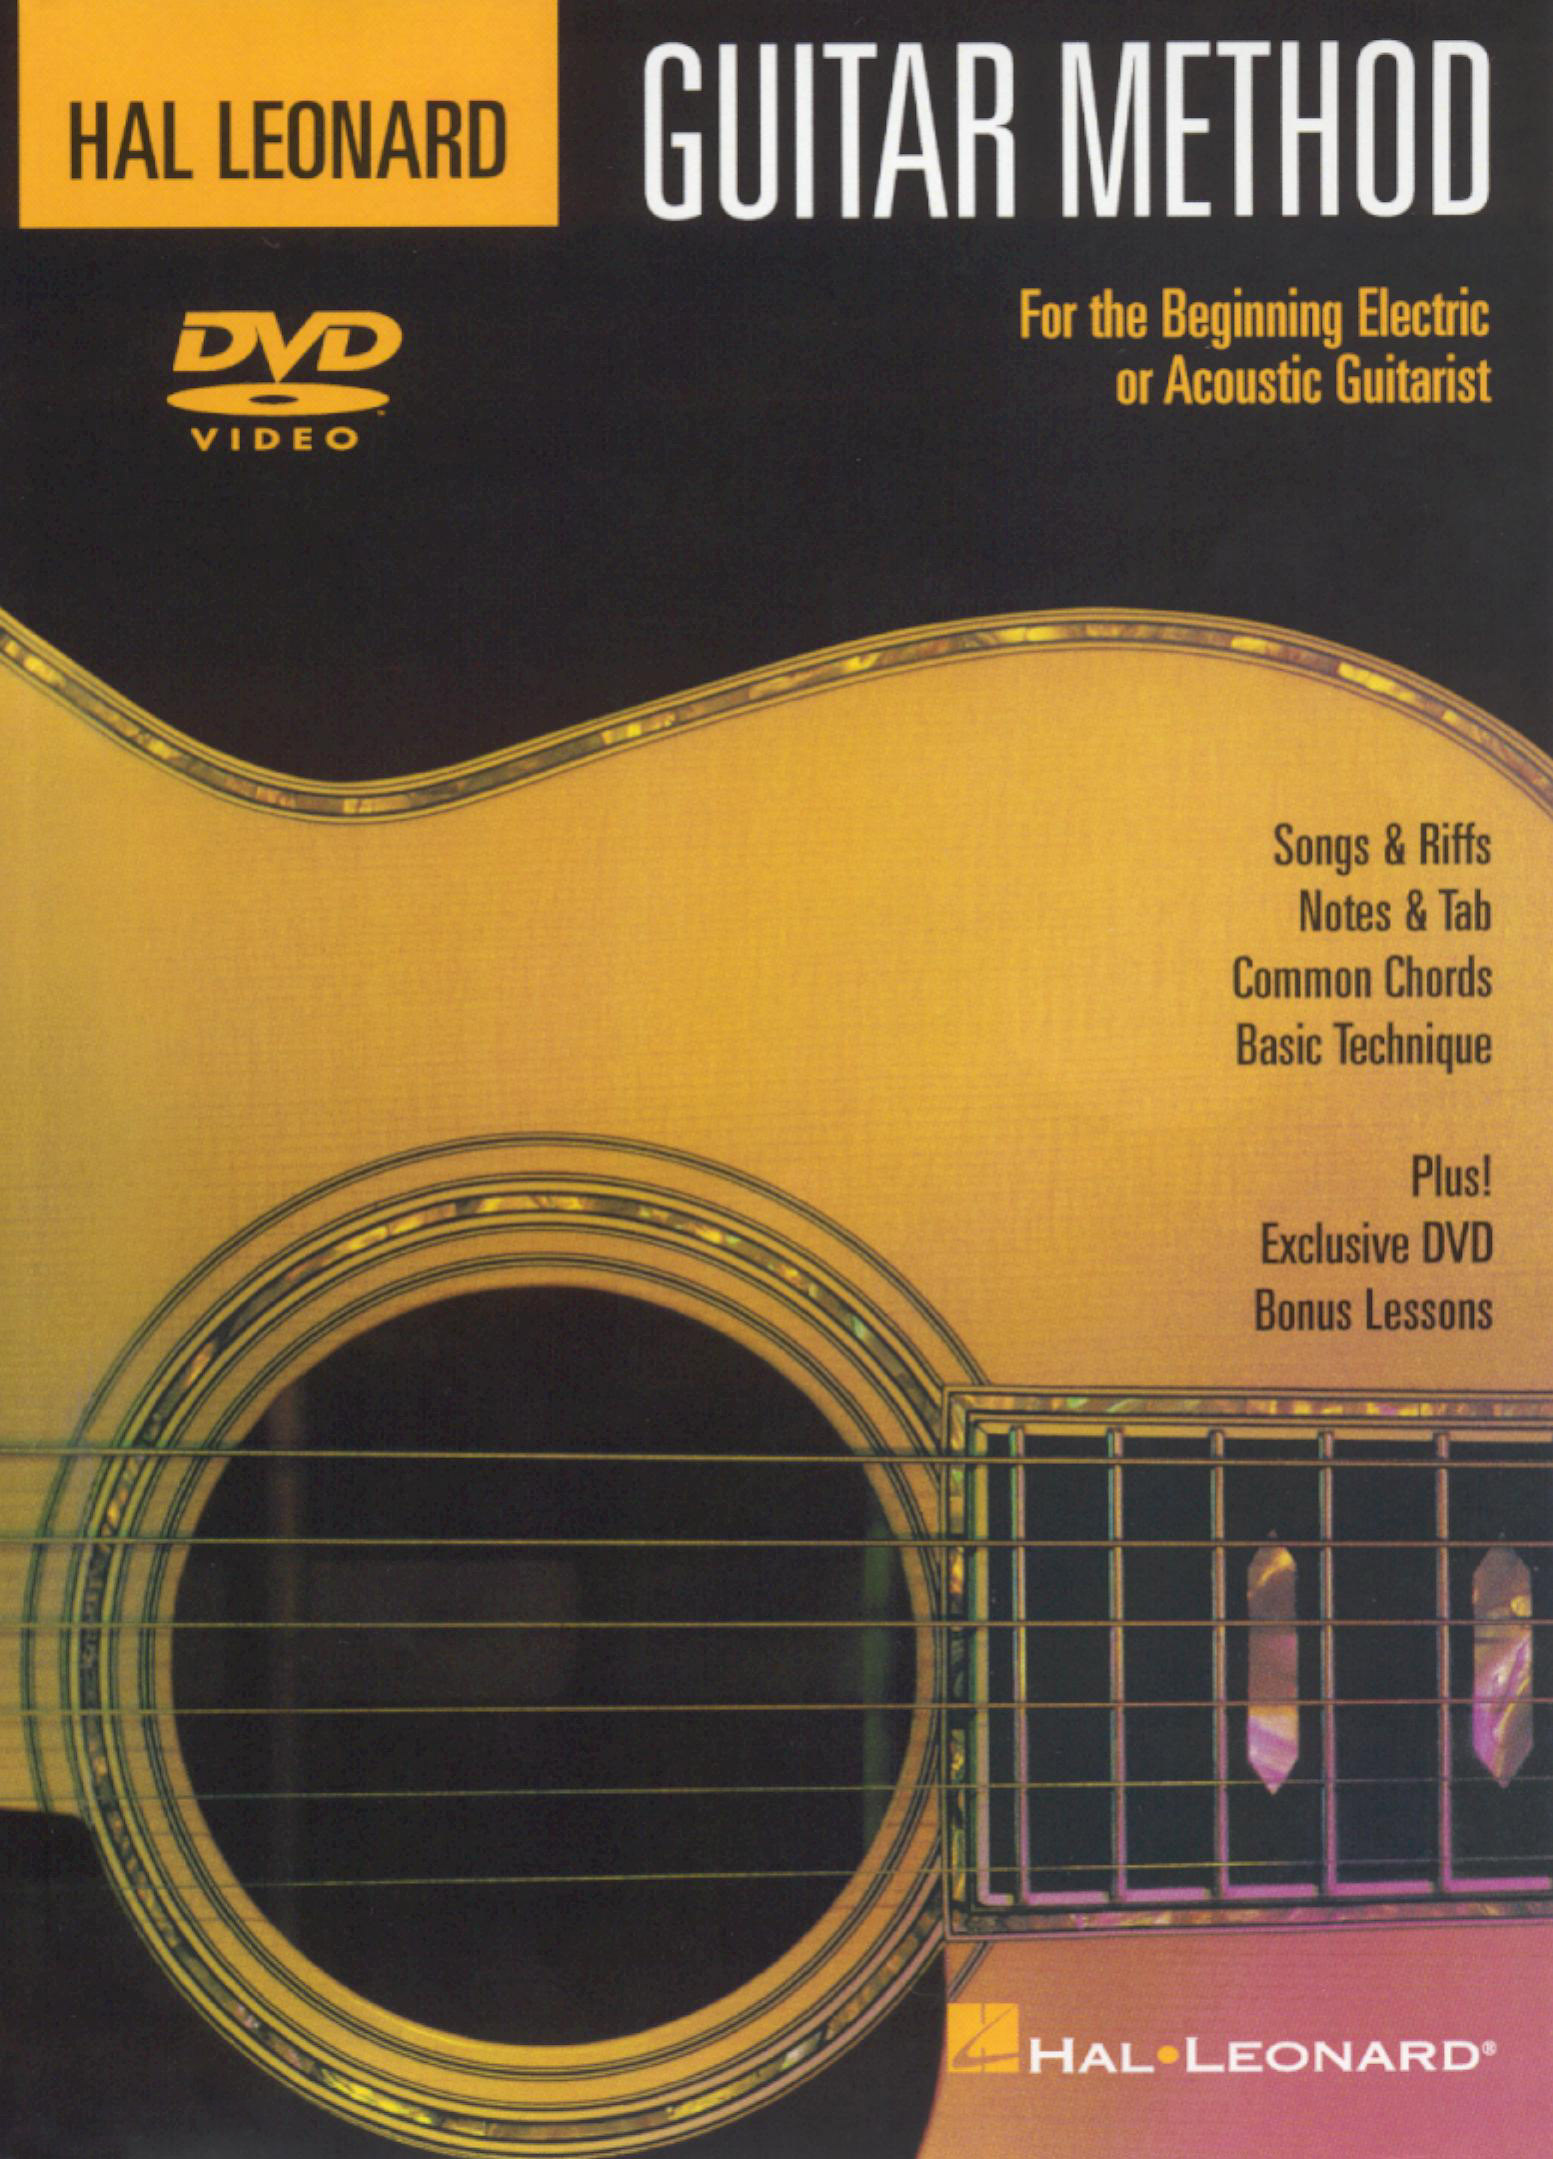 Guitar Method For the Beginning Electric or Acoustic Guitarist